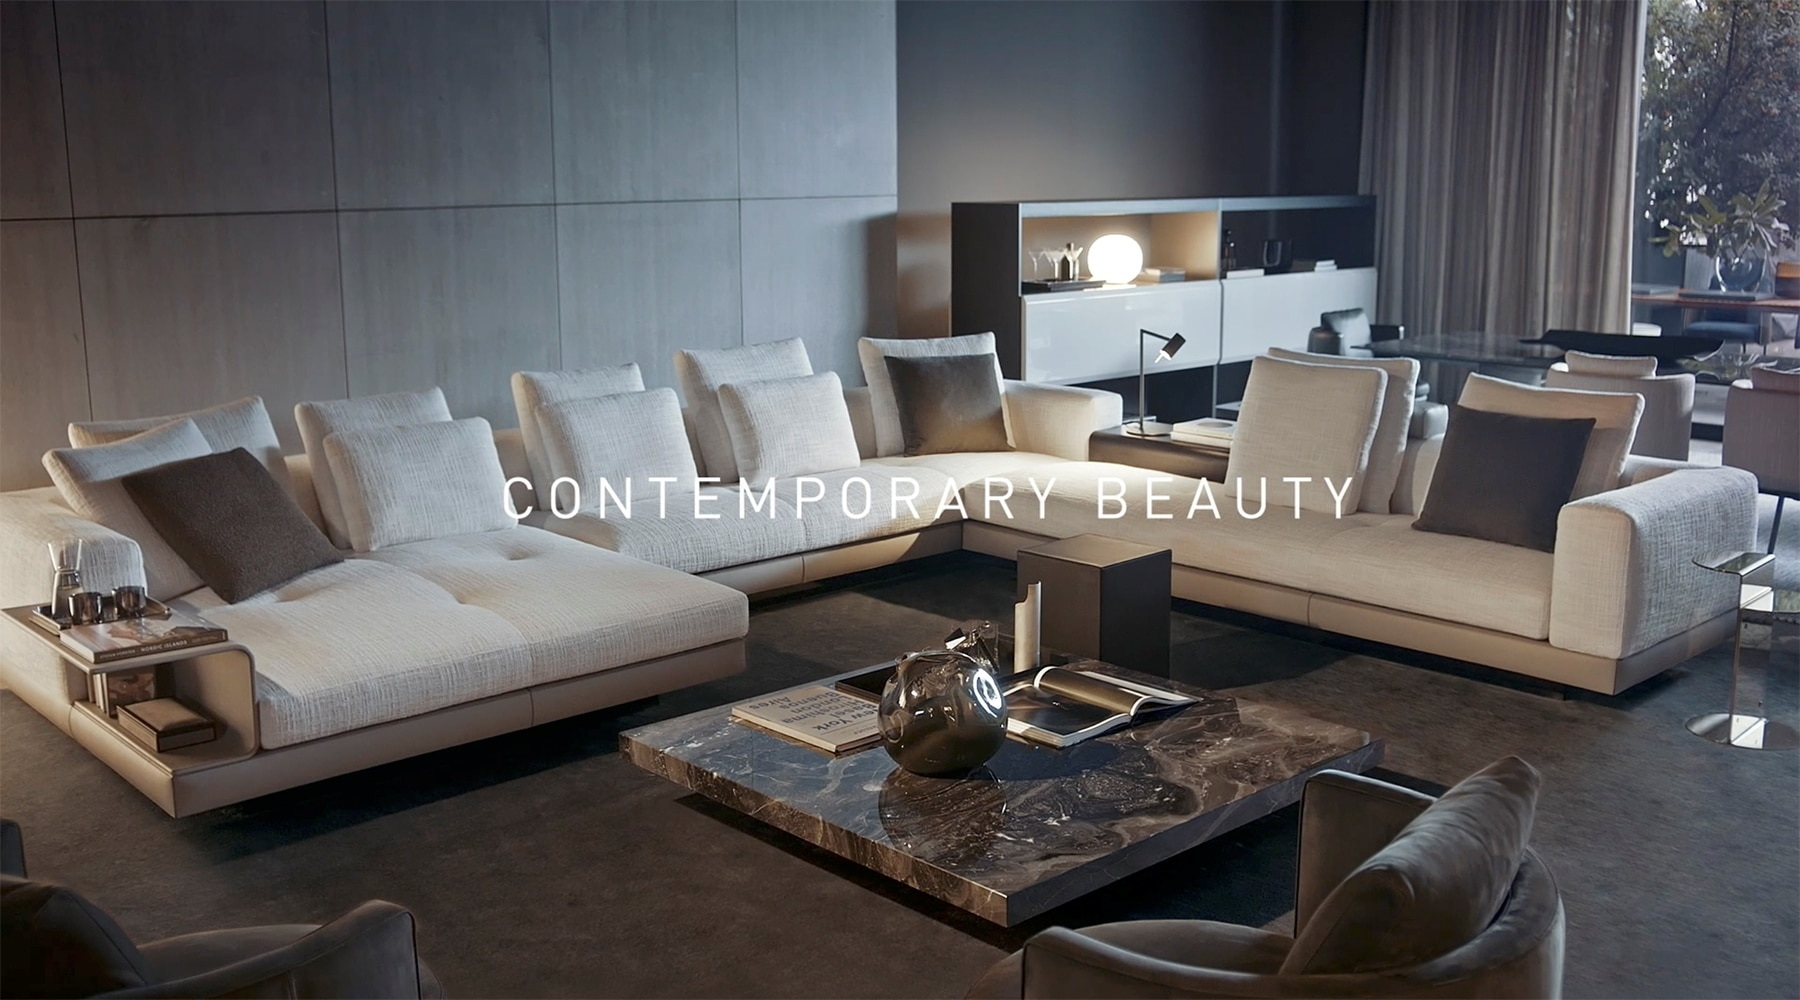 "Minotti ""Endless Moments Of Pleasure"" – Contemporary Beauty."